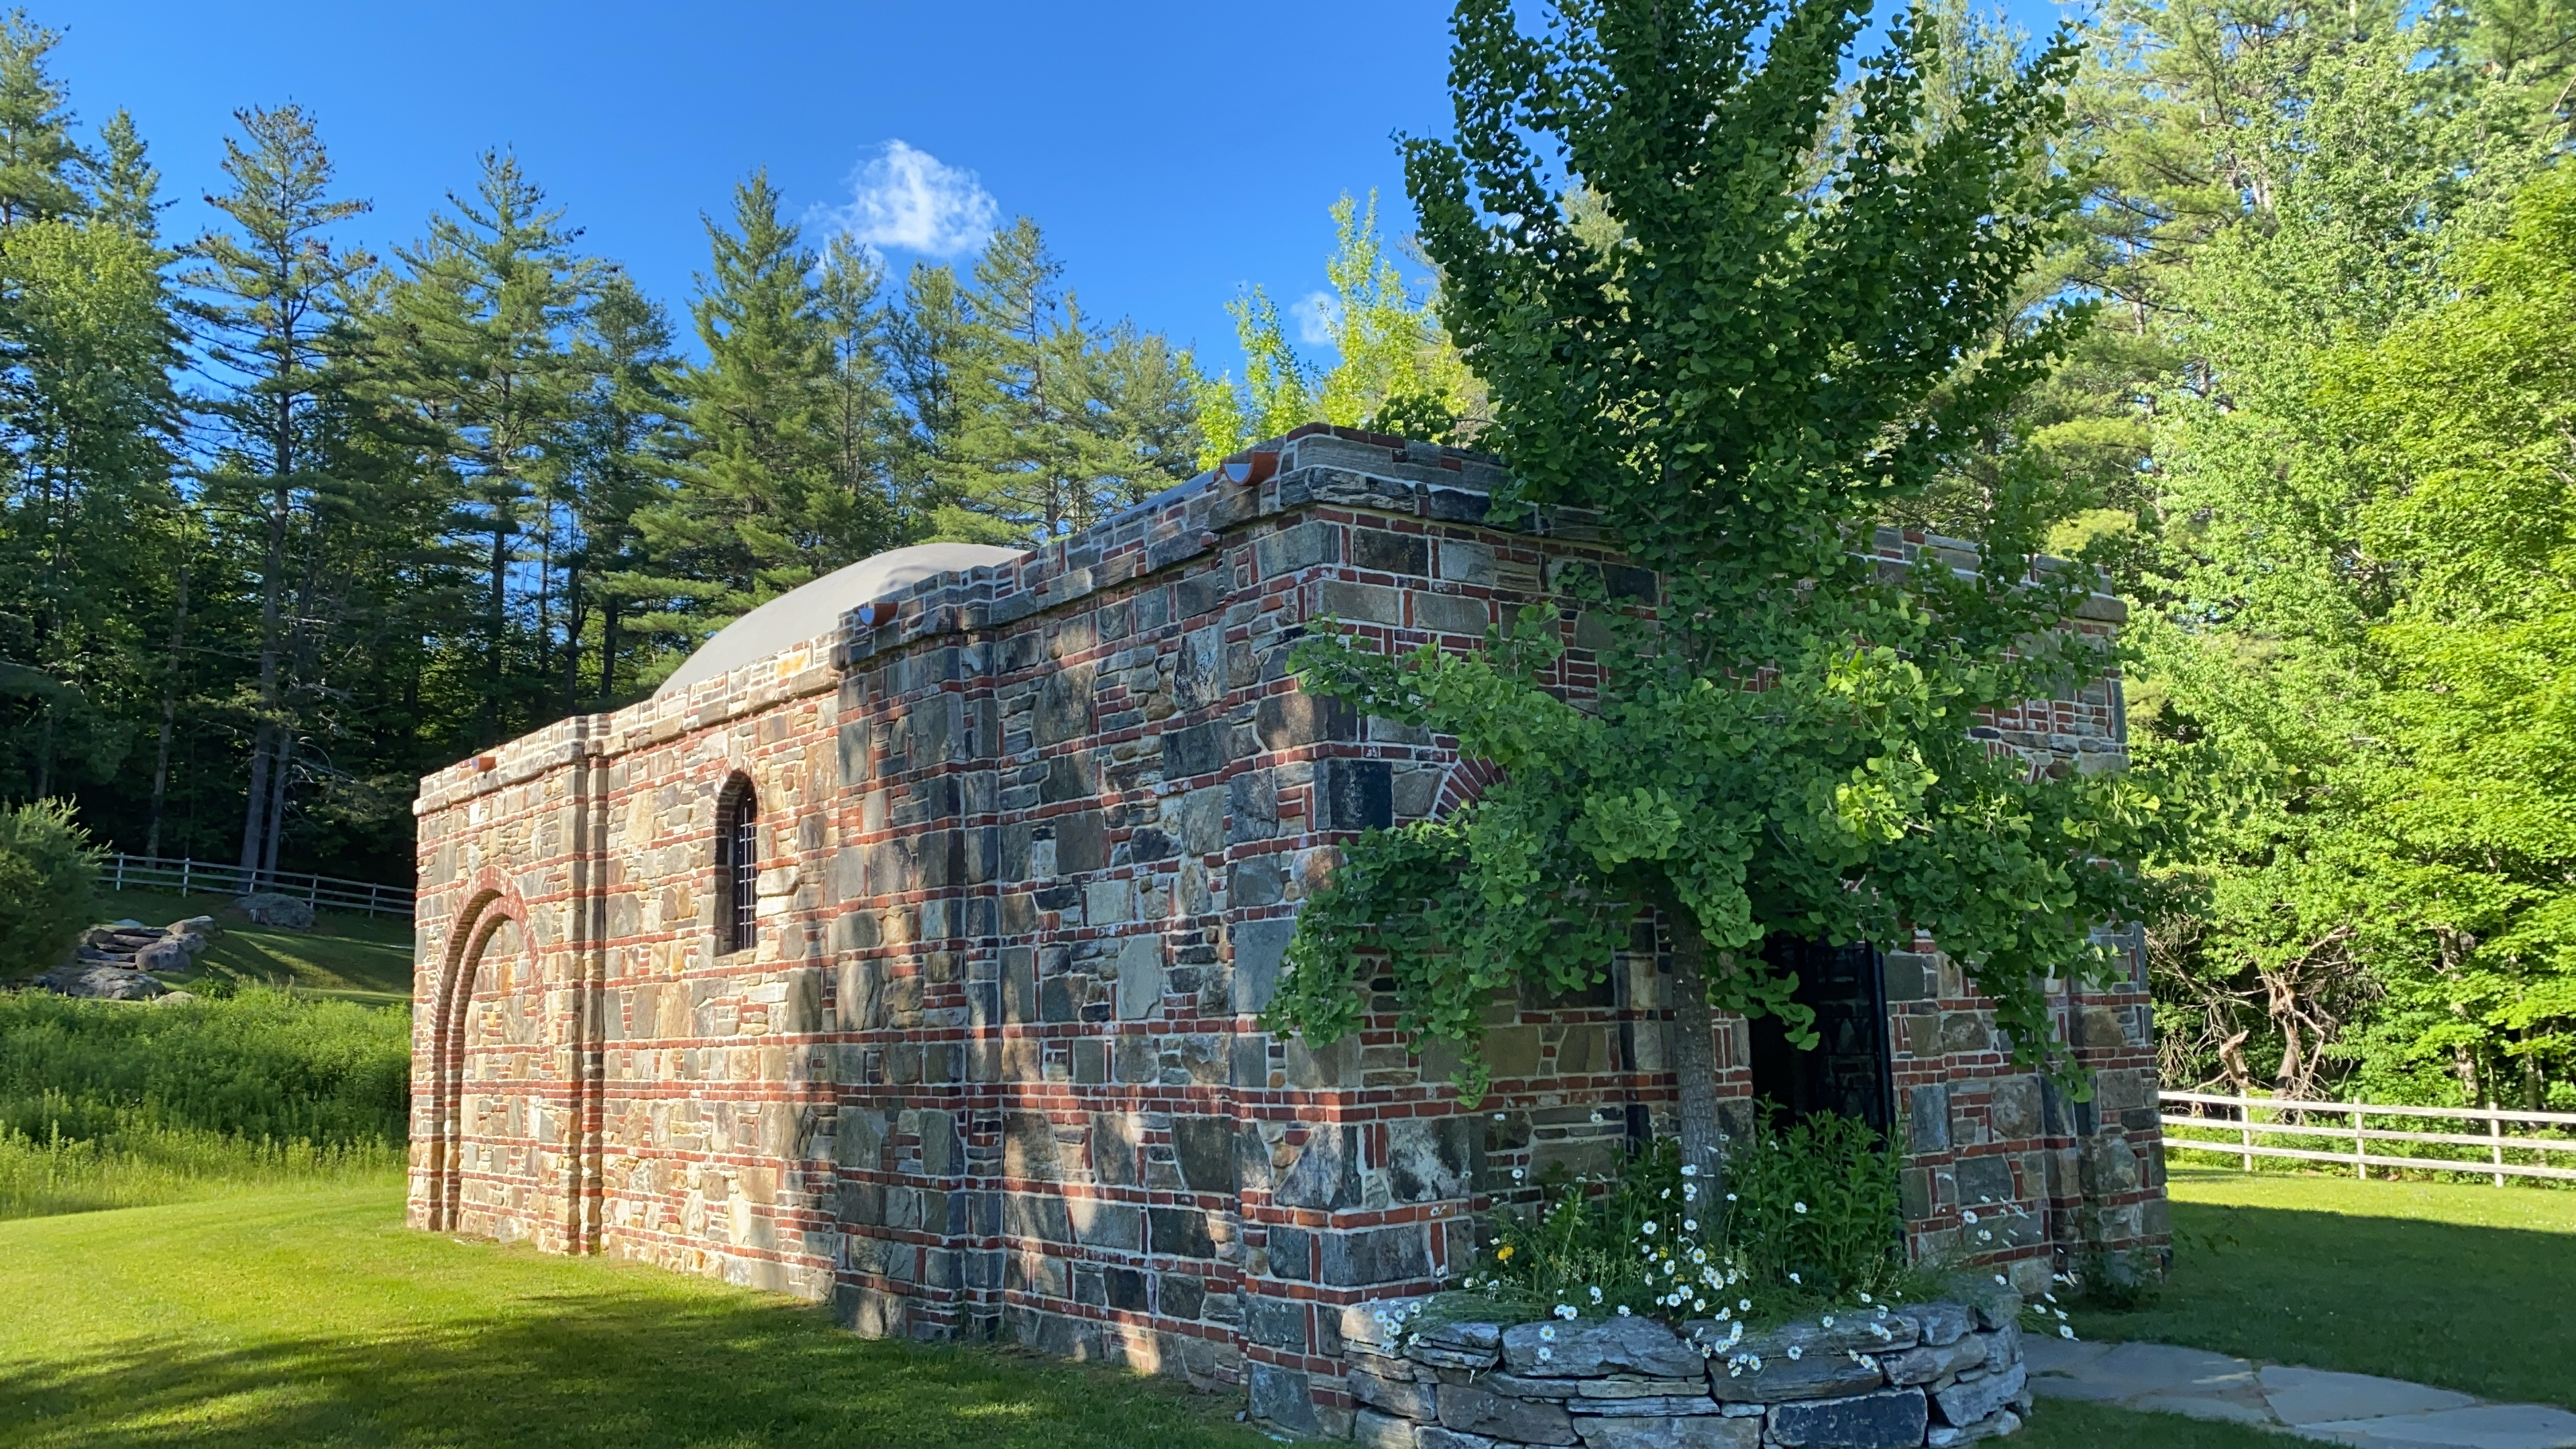 The replica of the House of the Virgin Mary in Jamaica, Vt.